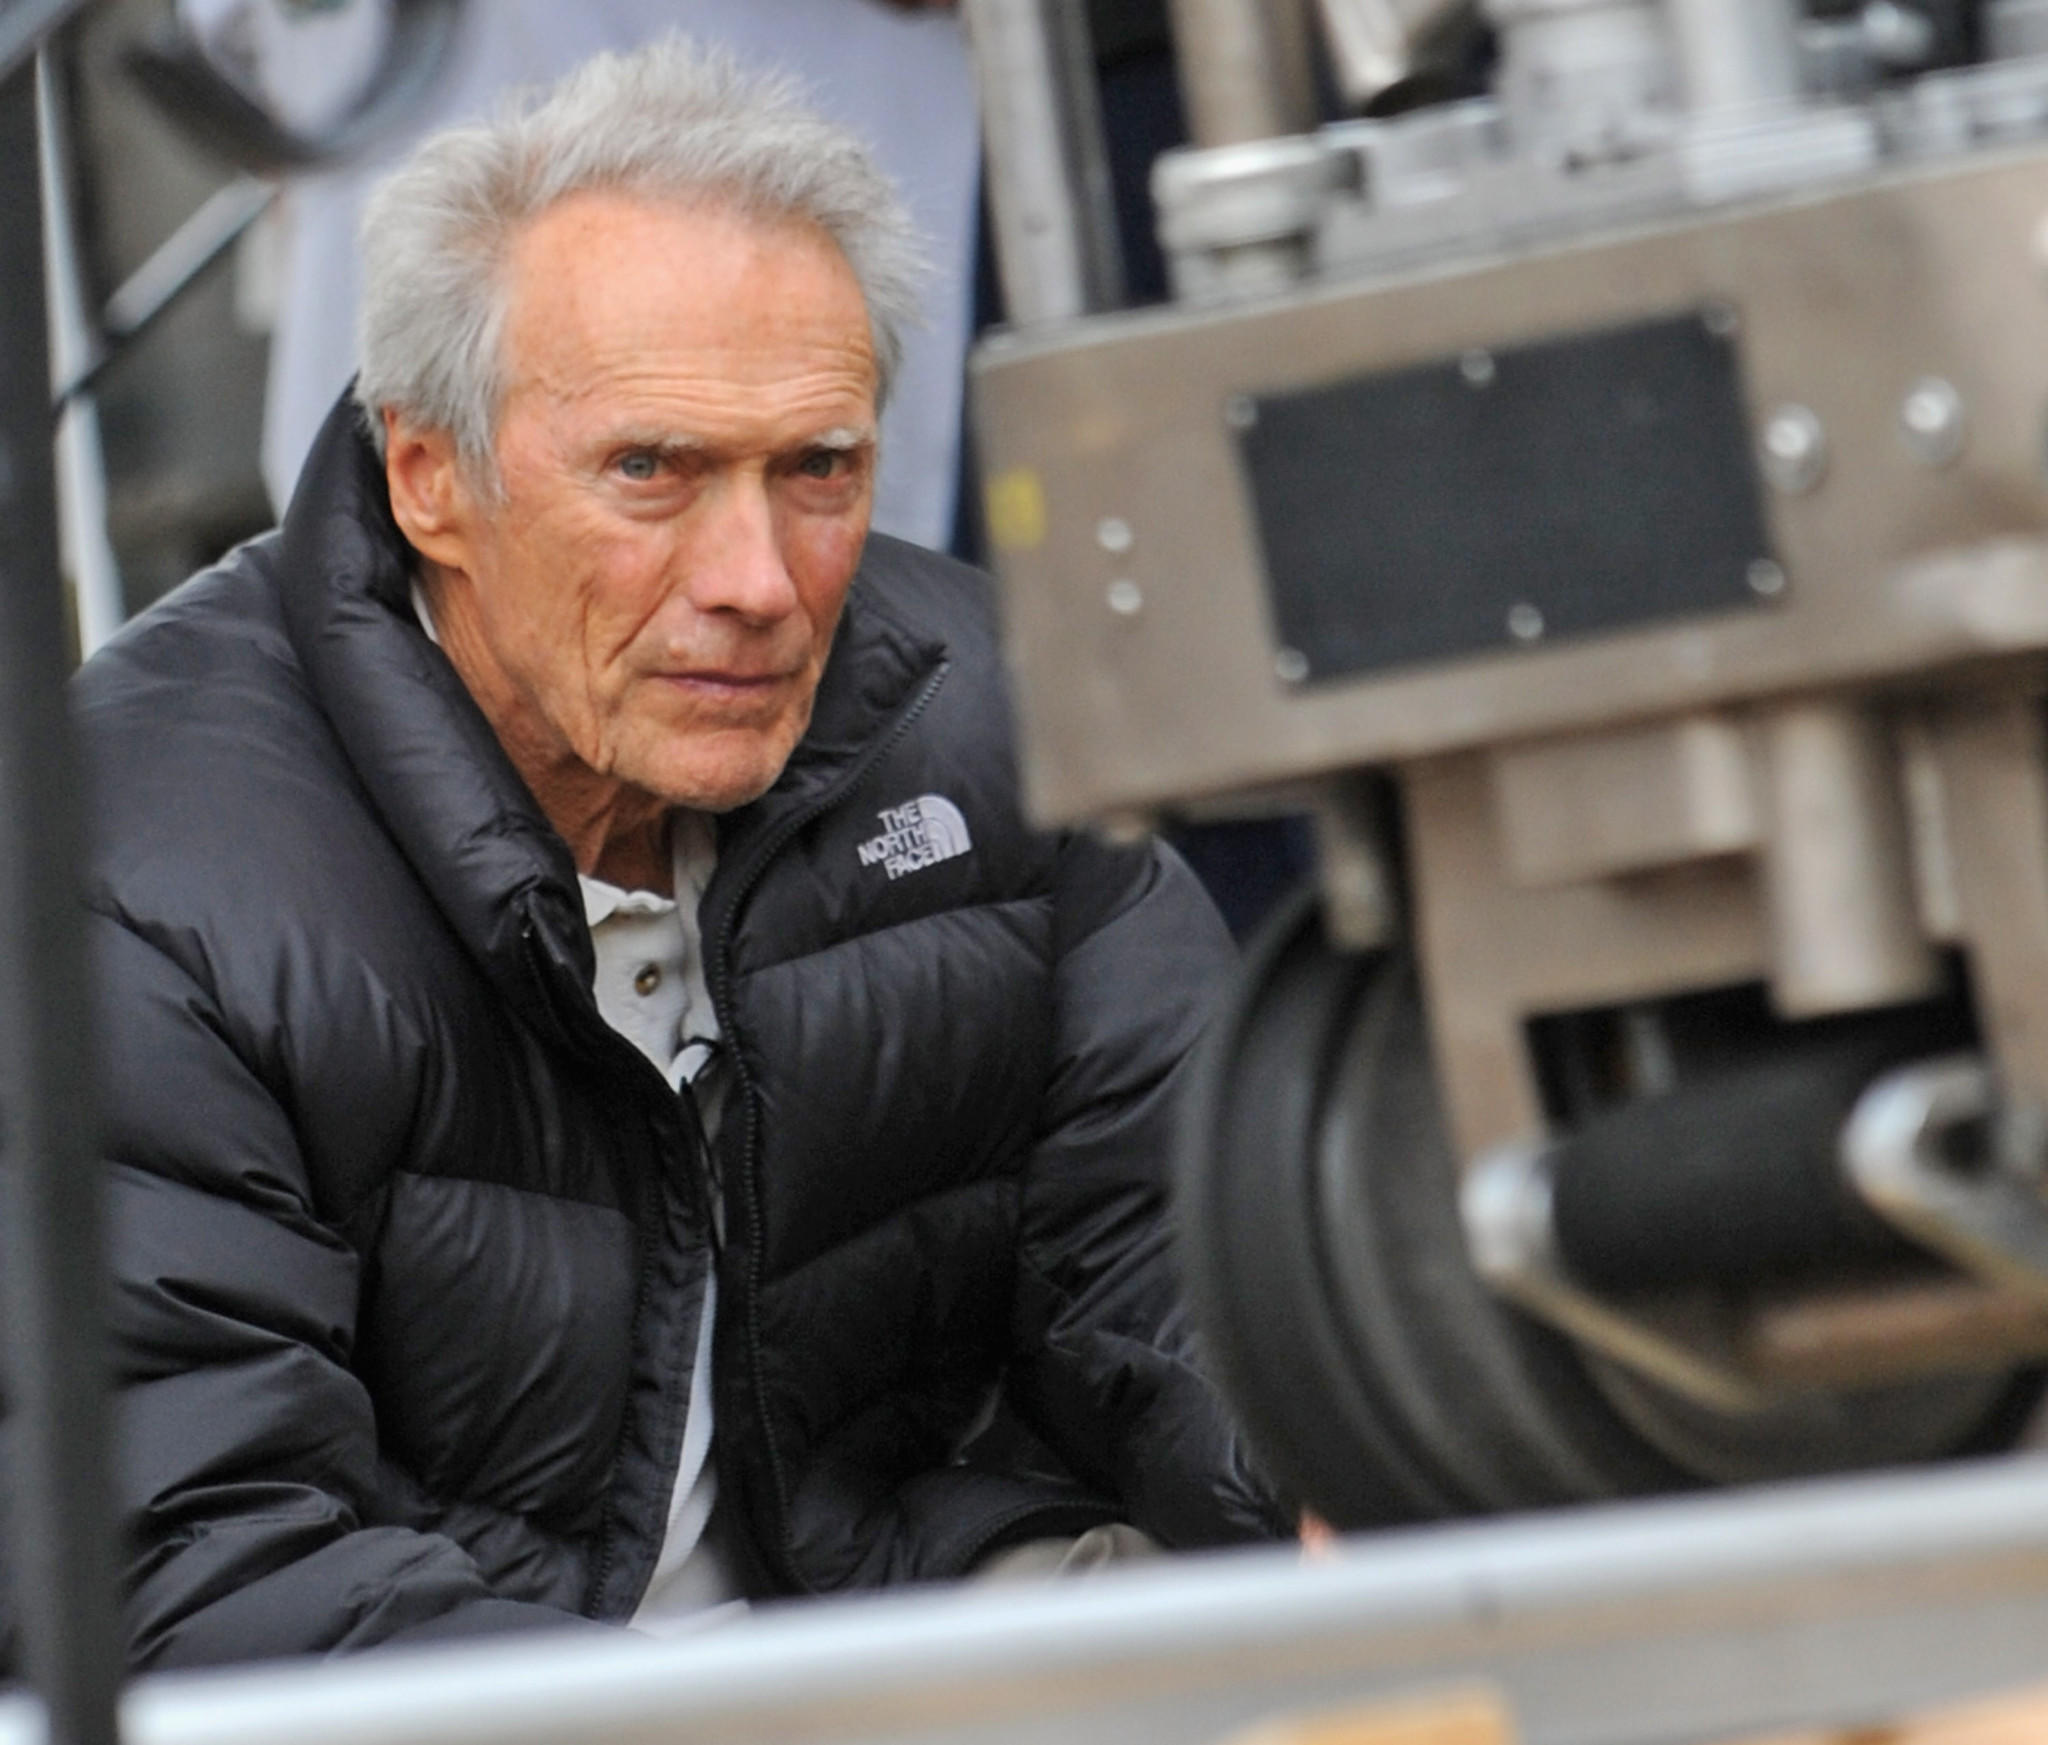 Clint%20Eastwood%20on%20the%20set%20of%20%22Jersey%20Boys.%22%20%28Bobby%20Bank%20/%20WireImage%20/%20Getty%20Images%29